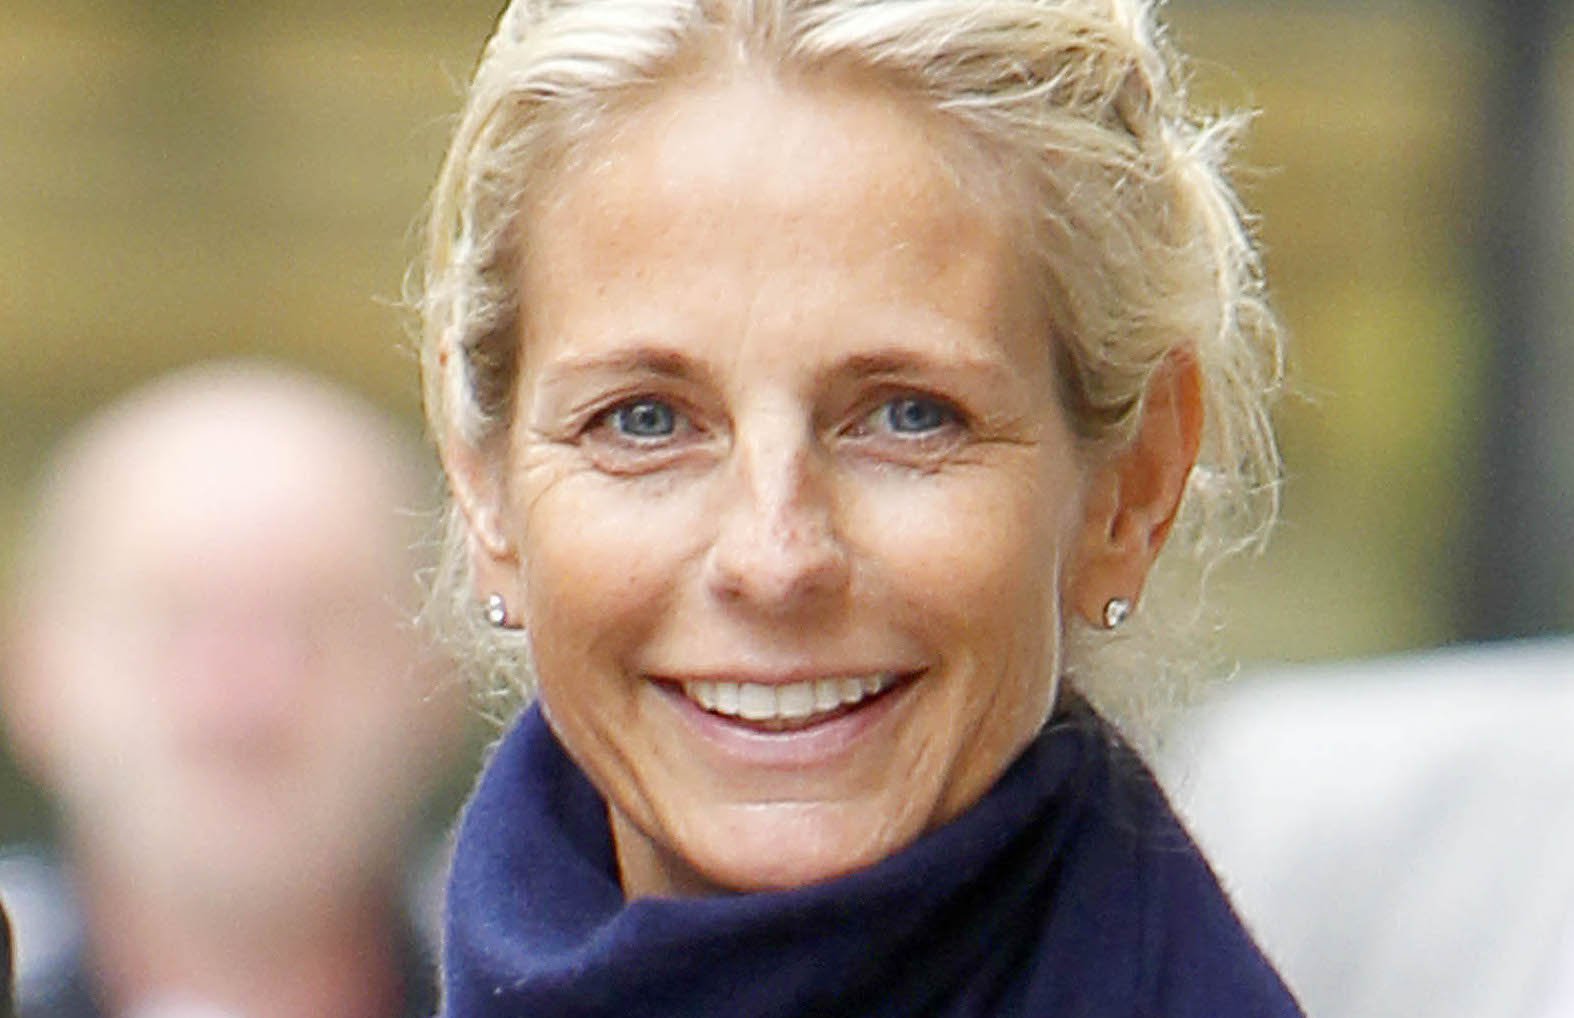 Ulrika Jonsson shares rare family photos from her sister's wedding